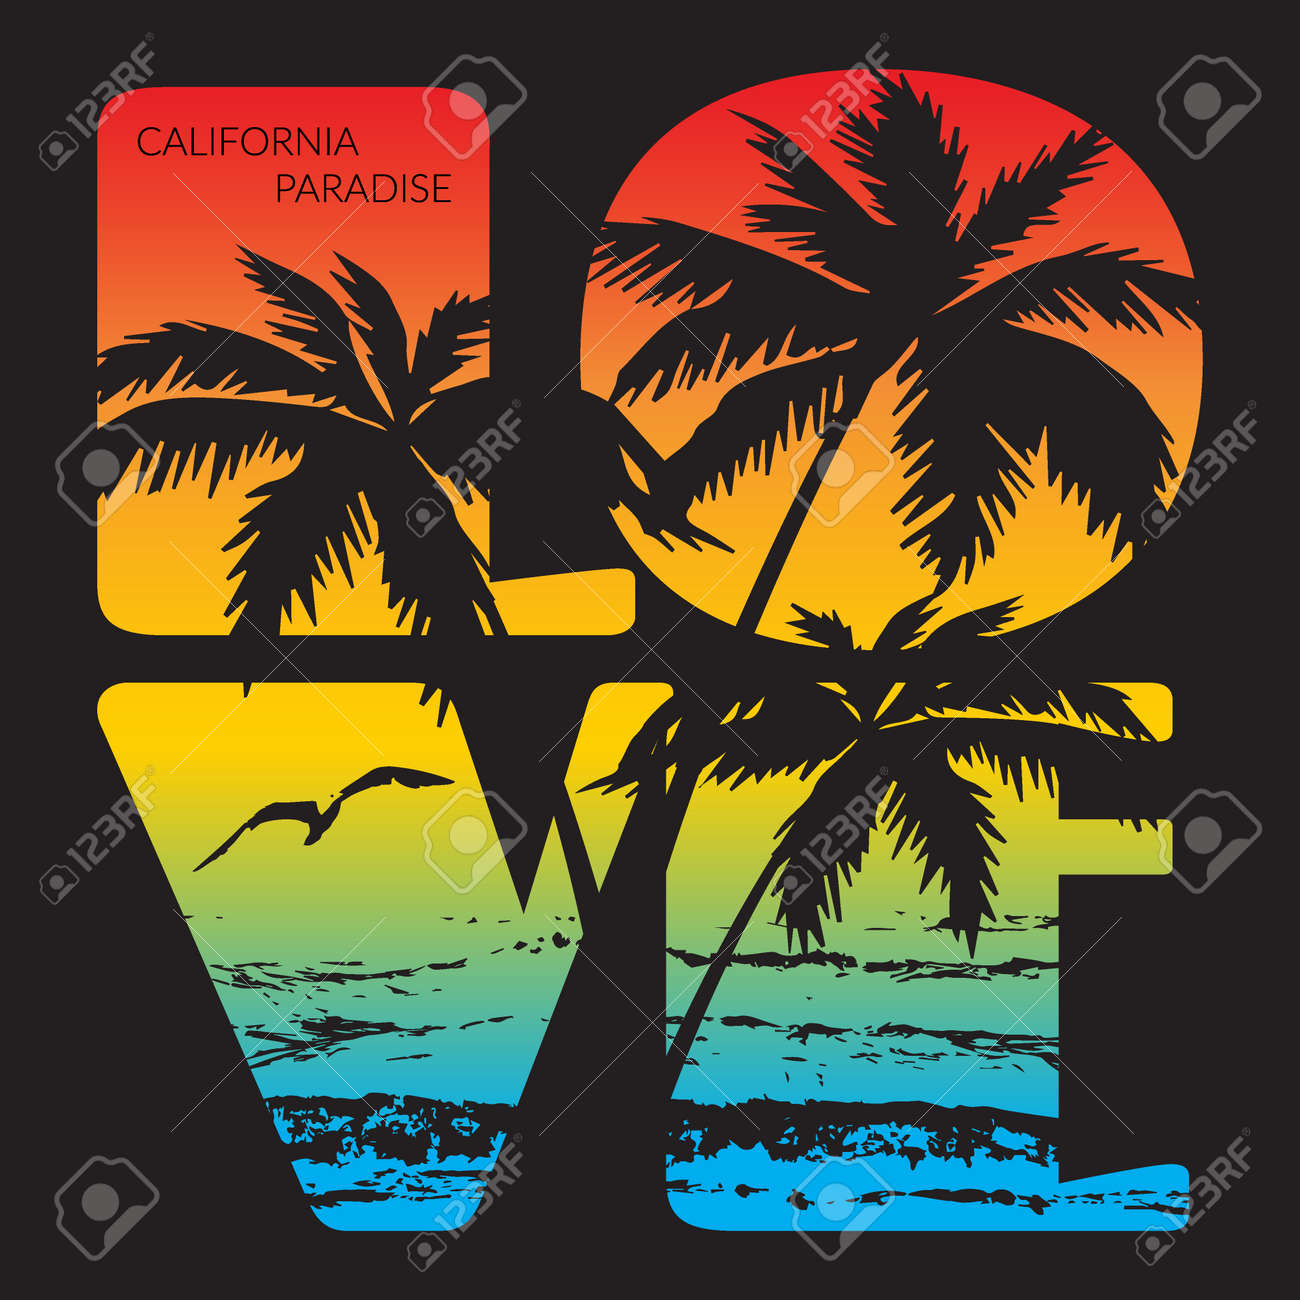 T Shirt Printing Design | California Paradise Typography Graphics T Shirt Printing Design